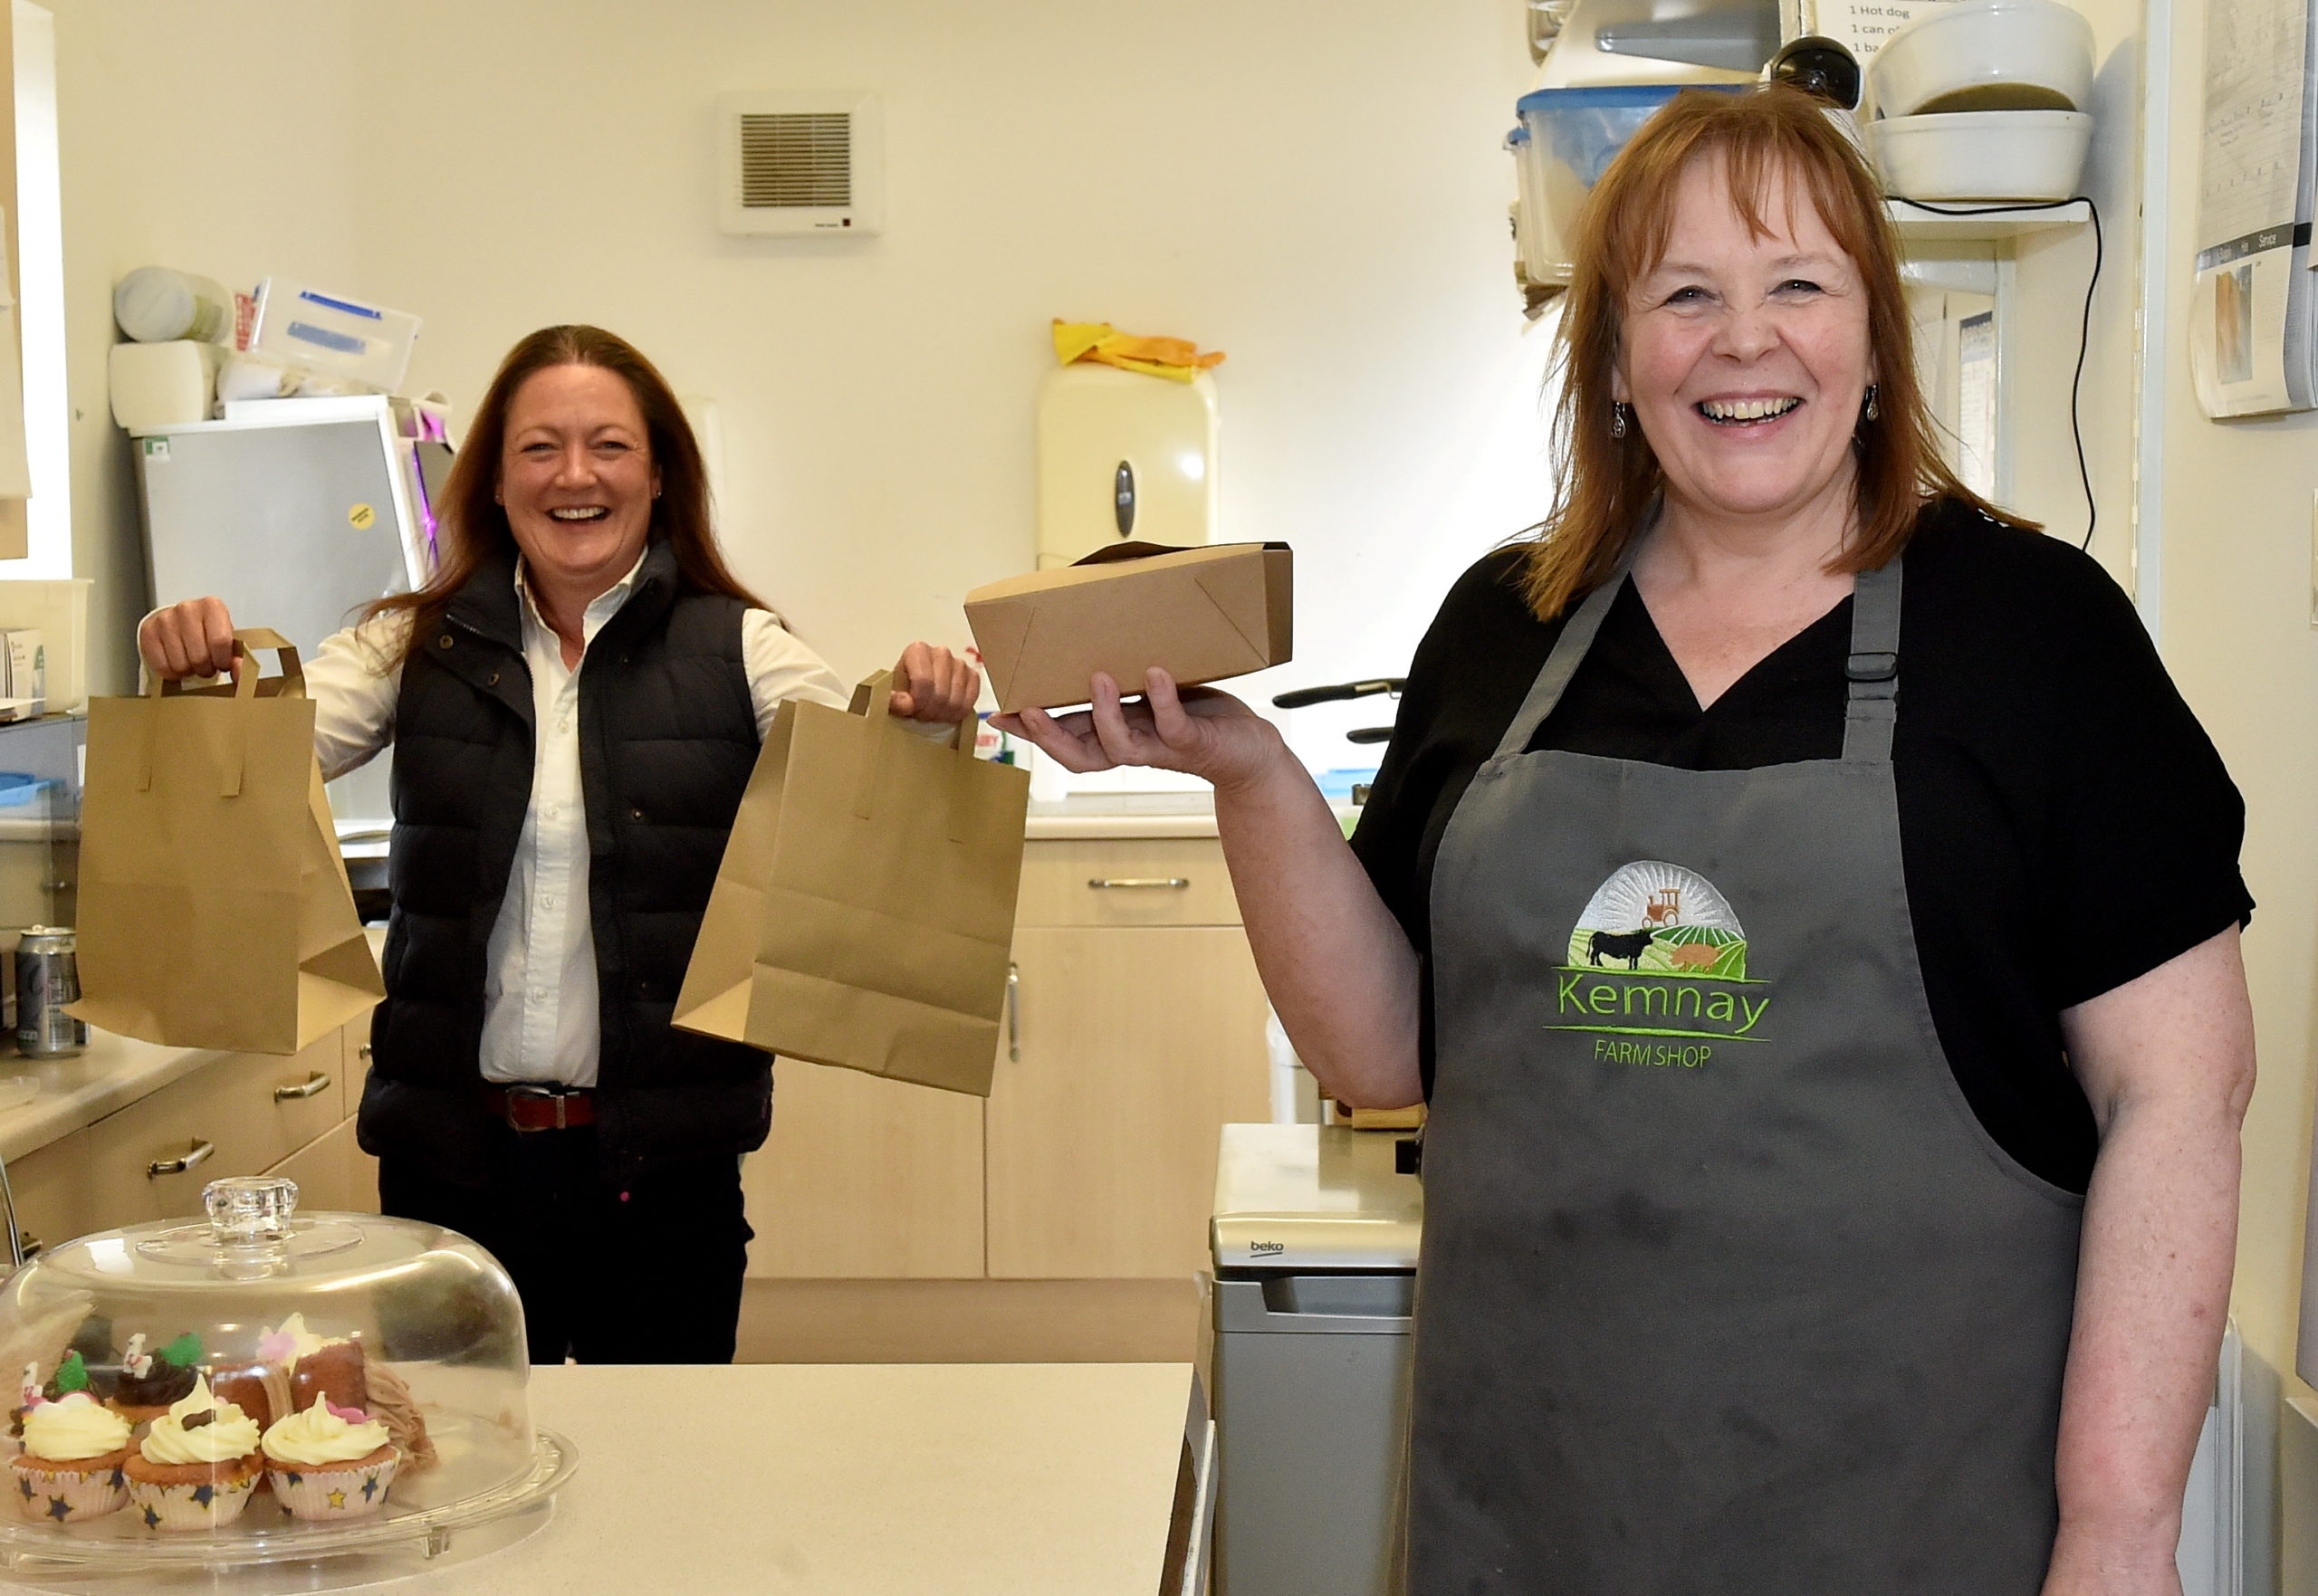 Michelle Clark, front, and Jill Thomson at Kemnay Farm Shop. Picture by Scott Baxter